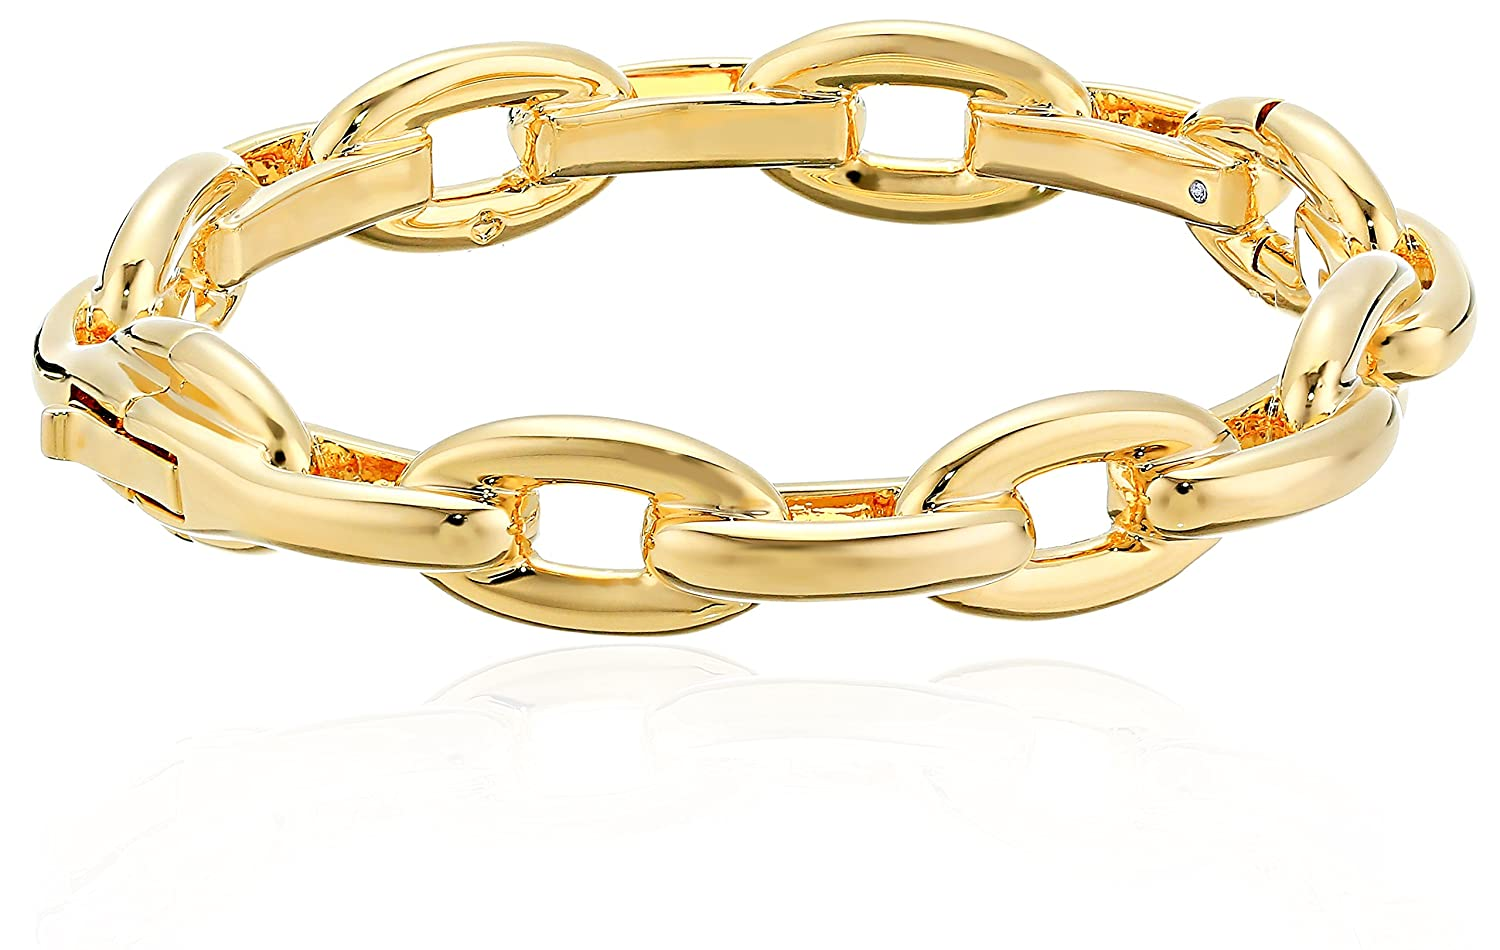 Kate Spade New York Womens Link Bangle Bracelet, Gold kate spade jewelry WBRUF764711